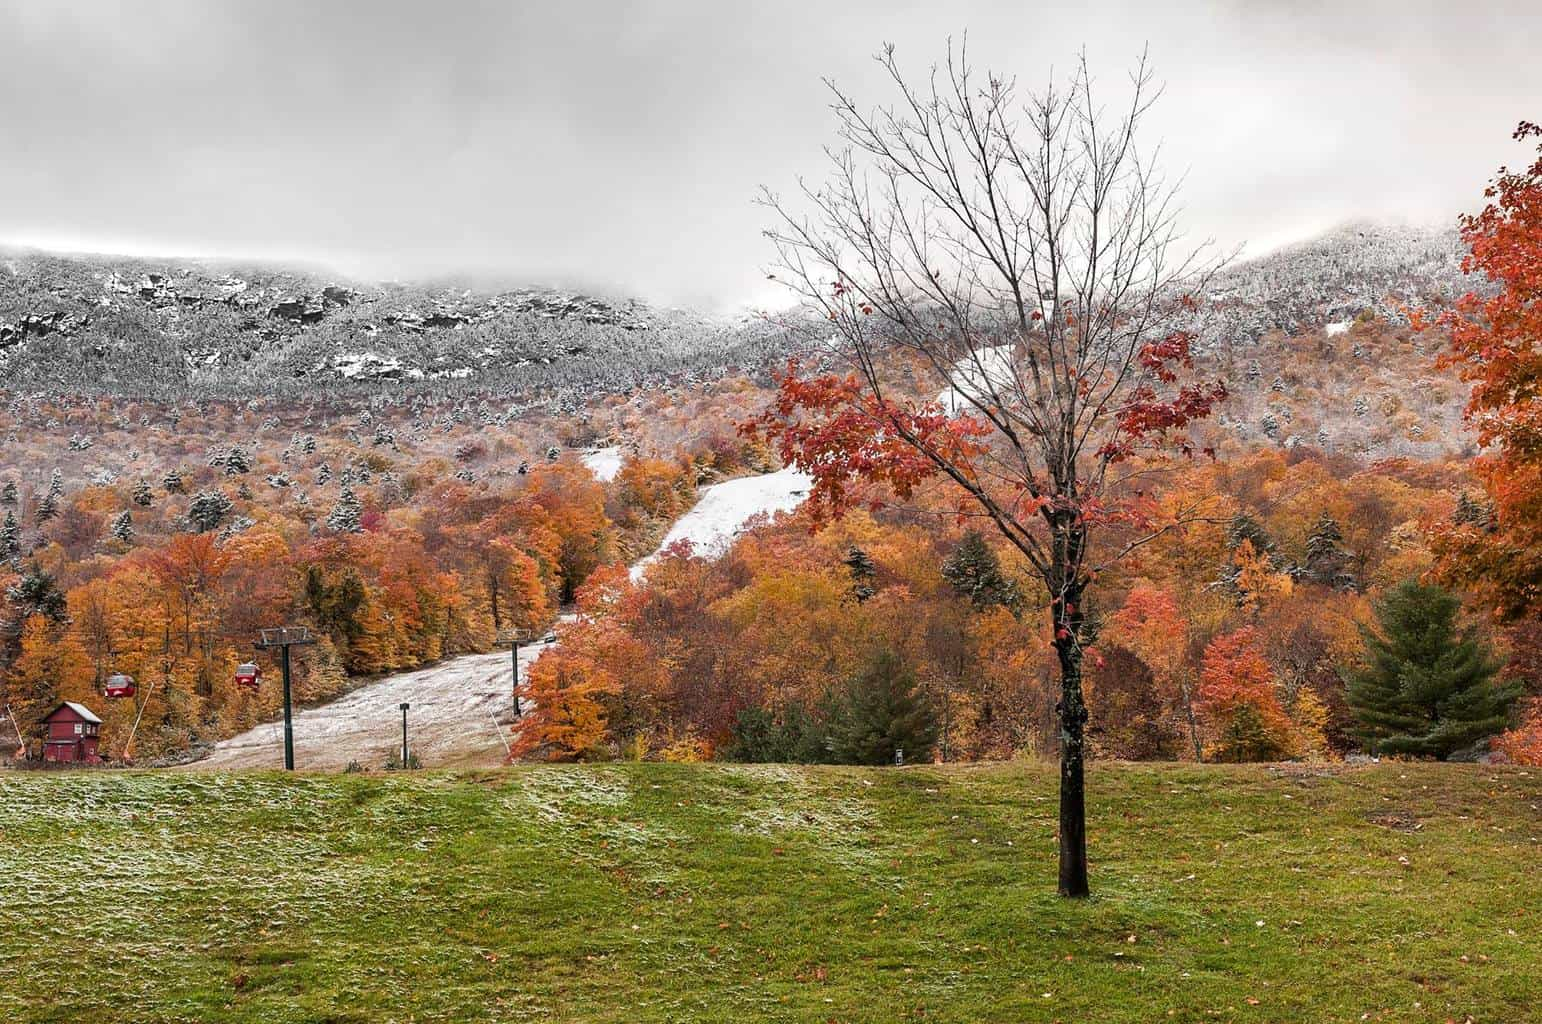 Today we went from foliage to snowliage in Vermont as winter made an early appearance. This was taken at the Stowe Resort: